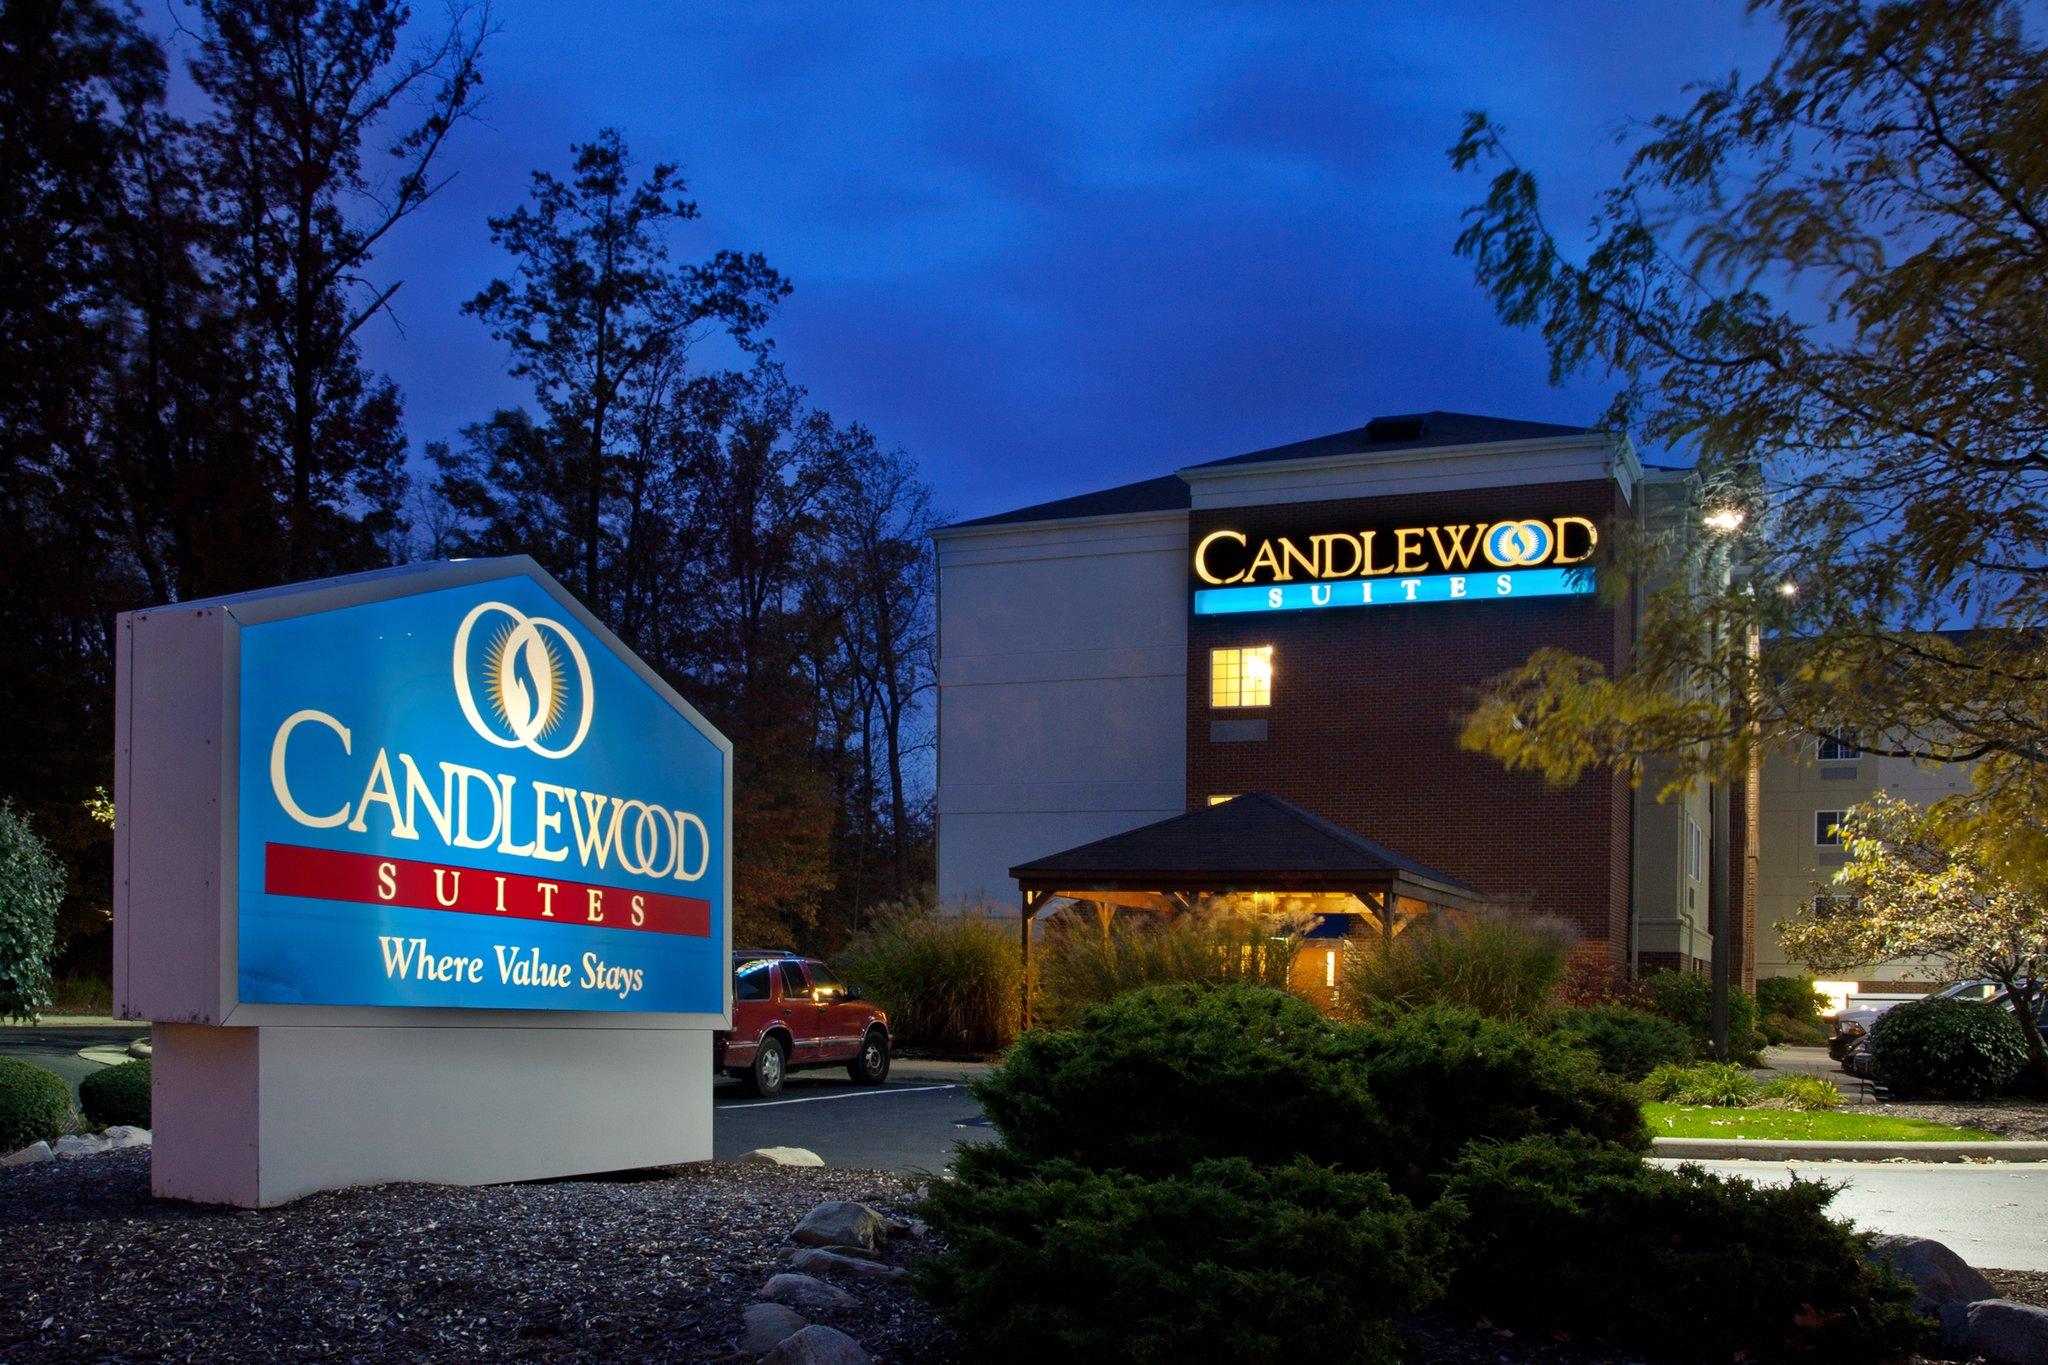 Candlewood Suites Cleveland